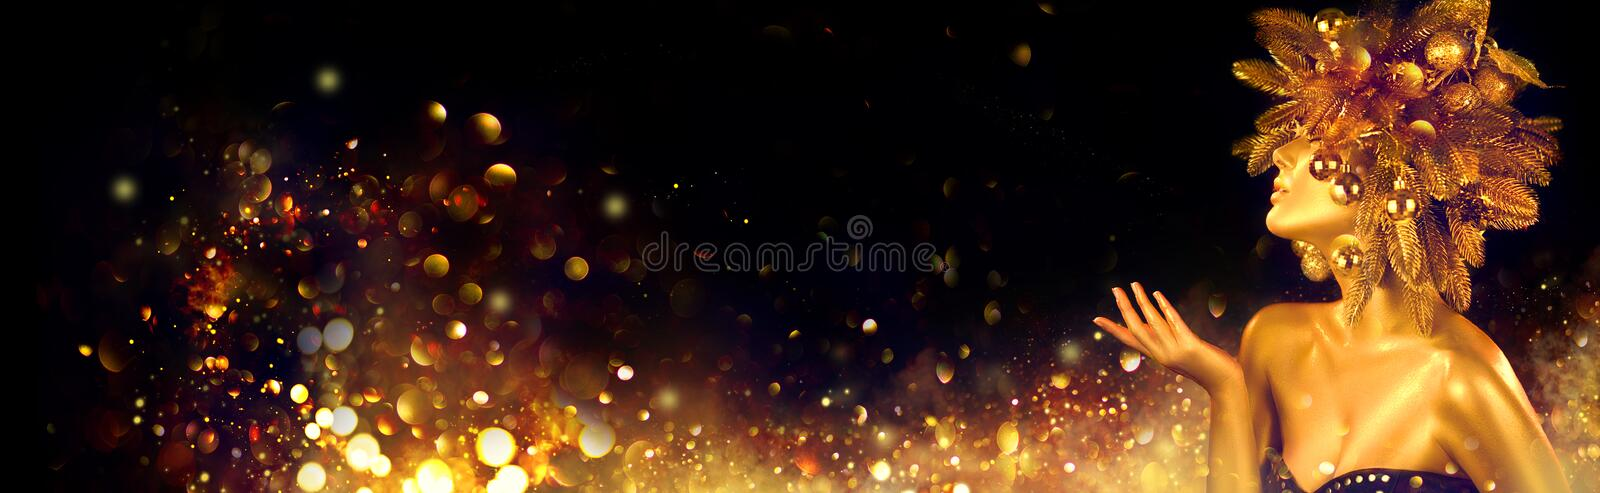 Christmas golden Woman. Winter girl pointing Hand, blowing blinking stars, Beautiful New Year, Christmas Tree Holiday Hairstyle stock photo